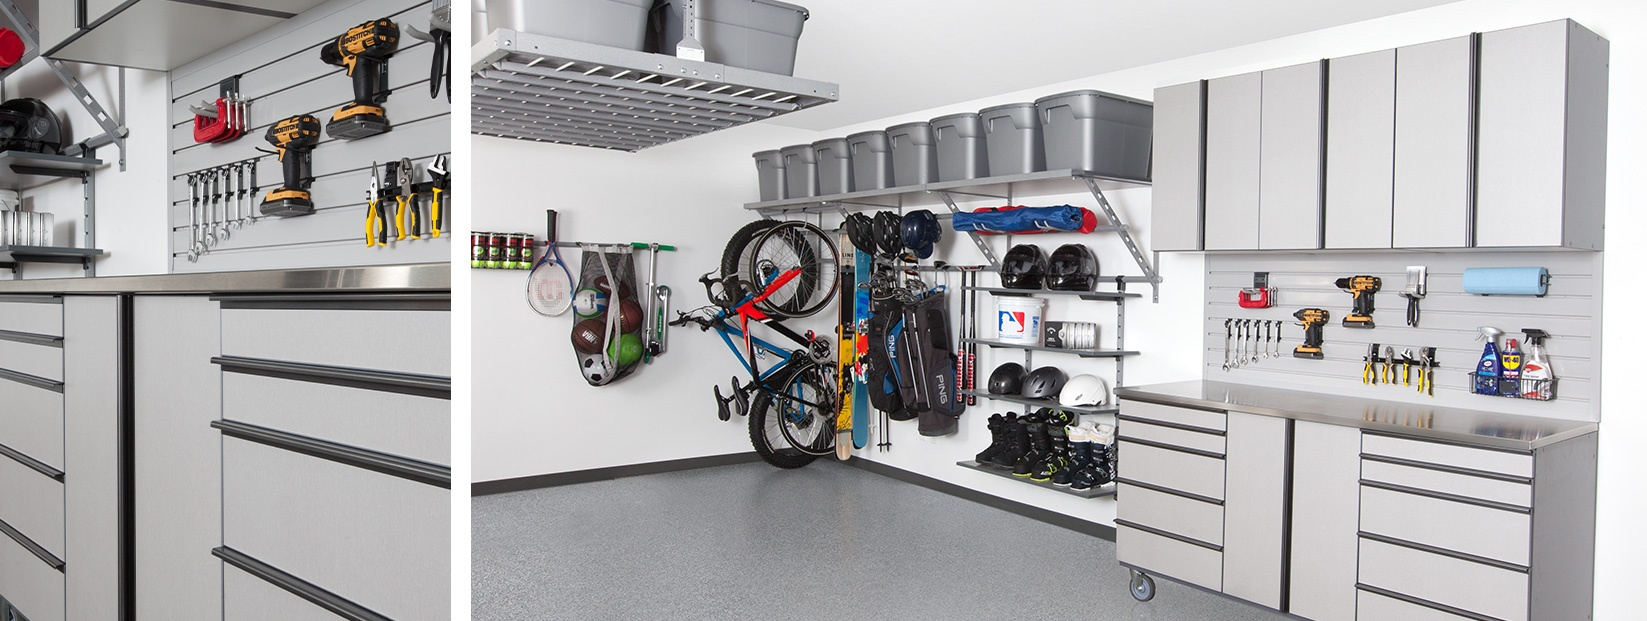 Outdoor Storage Sheds Some Important Considerations